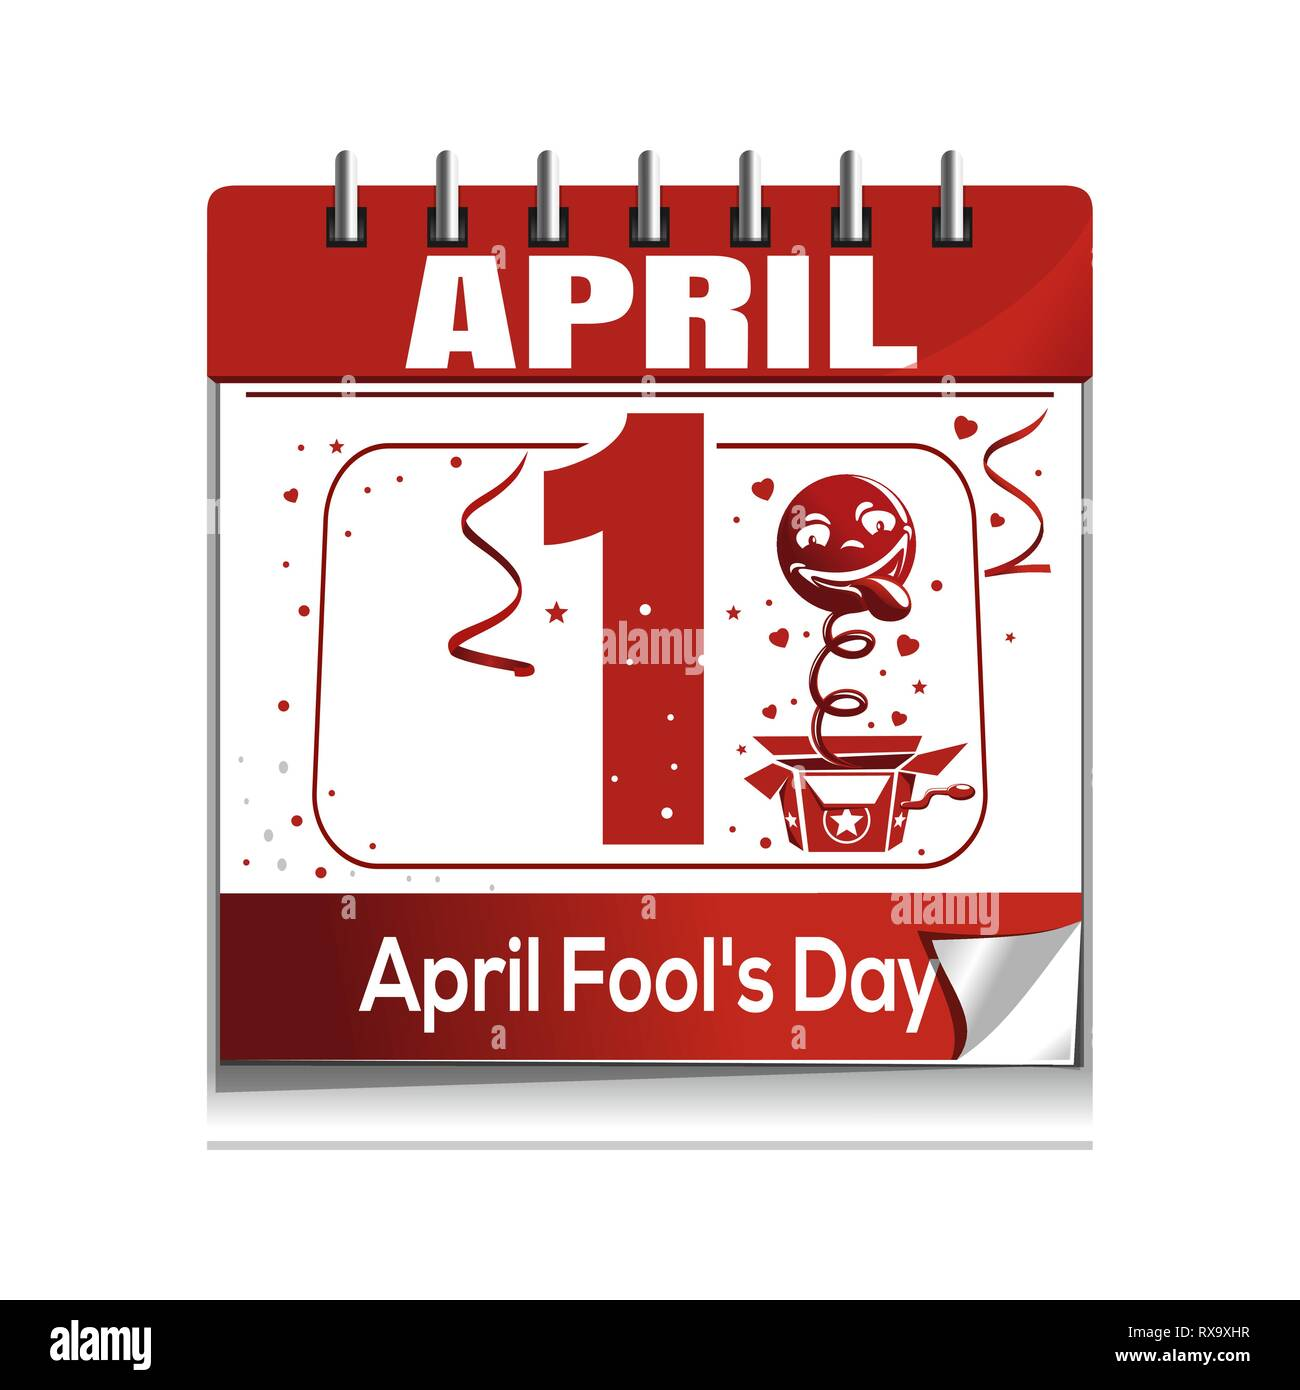 April Fools Day. April 1. Daily calendar icon Stock Vector Image & Art -  Alamy